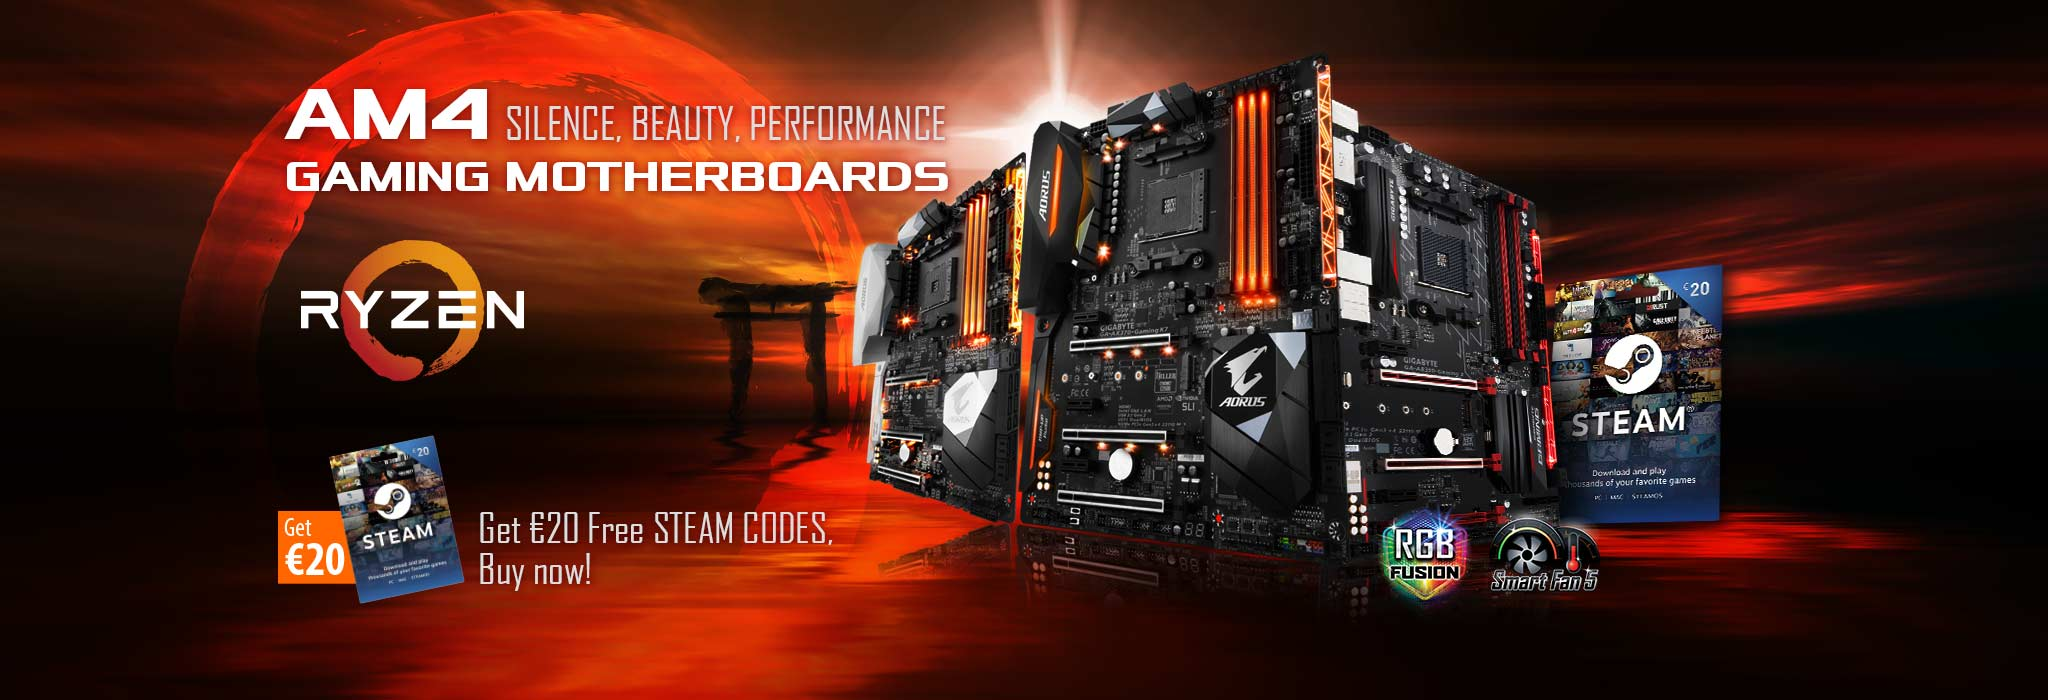 Am4 Gaming Motherboards Steam Code Bundle Aorus Wallet 20 Starting From The 11th Of April 2017 Gigabyte Will For Free Gift You With Codes When Buy Select